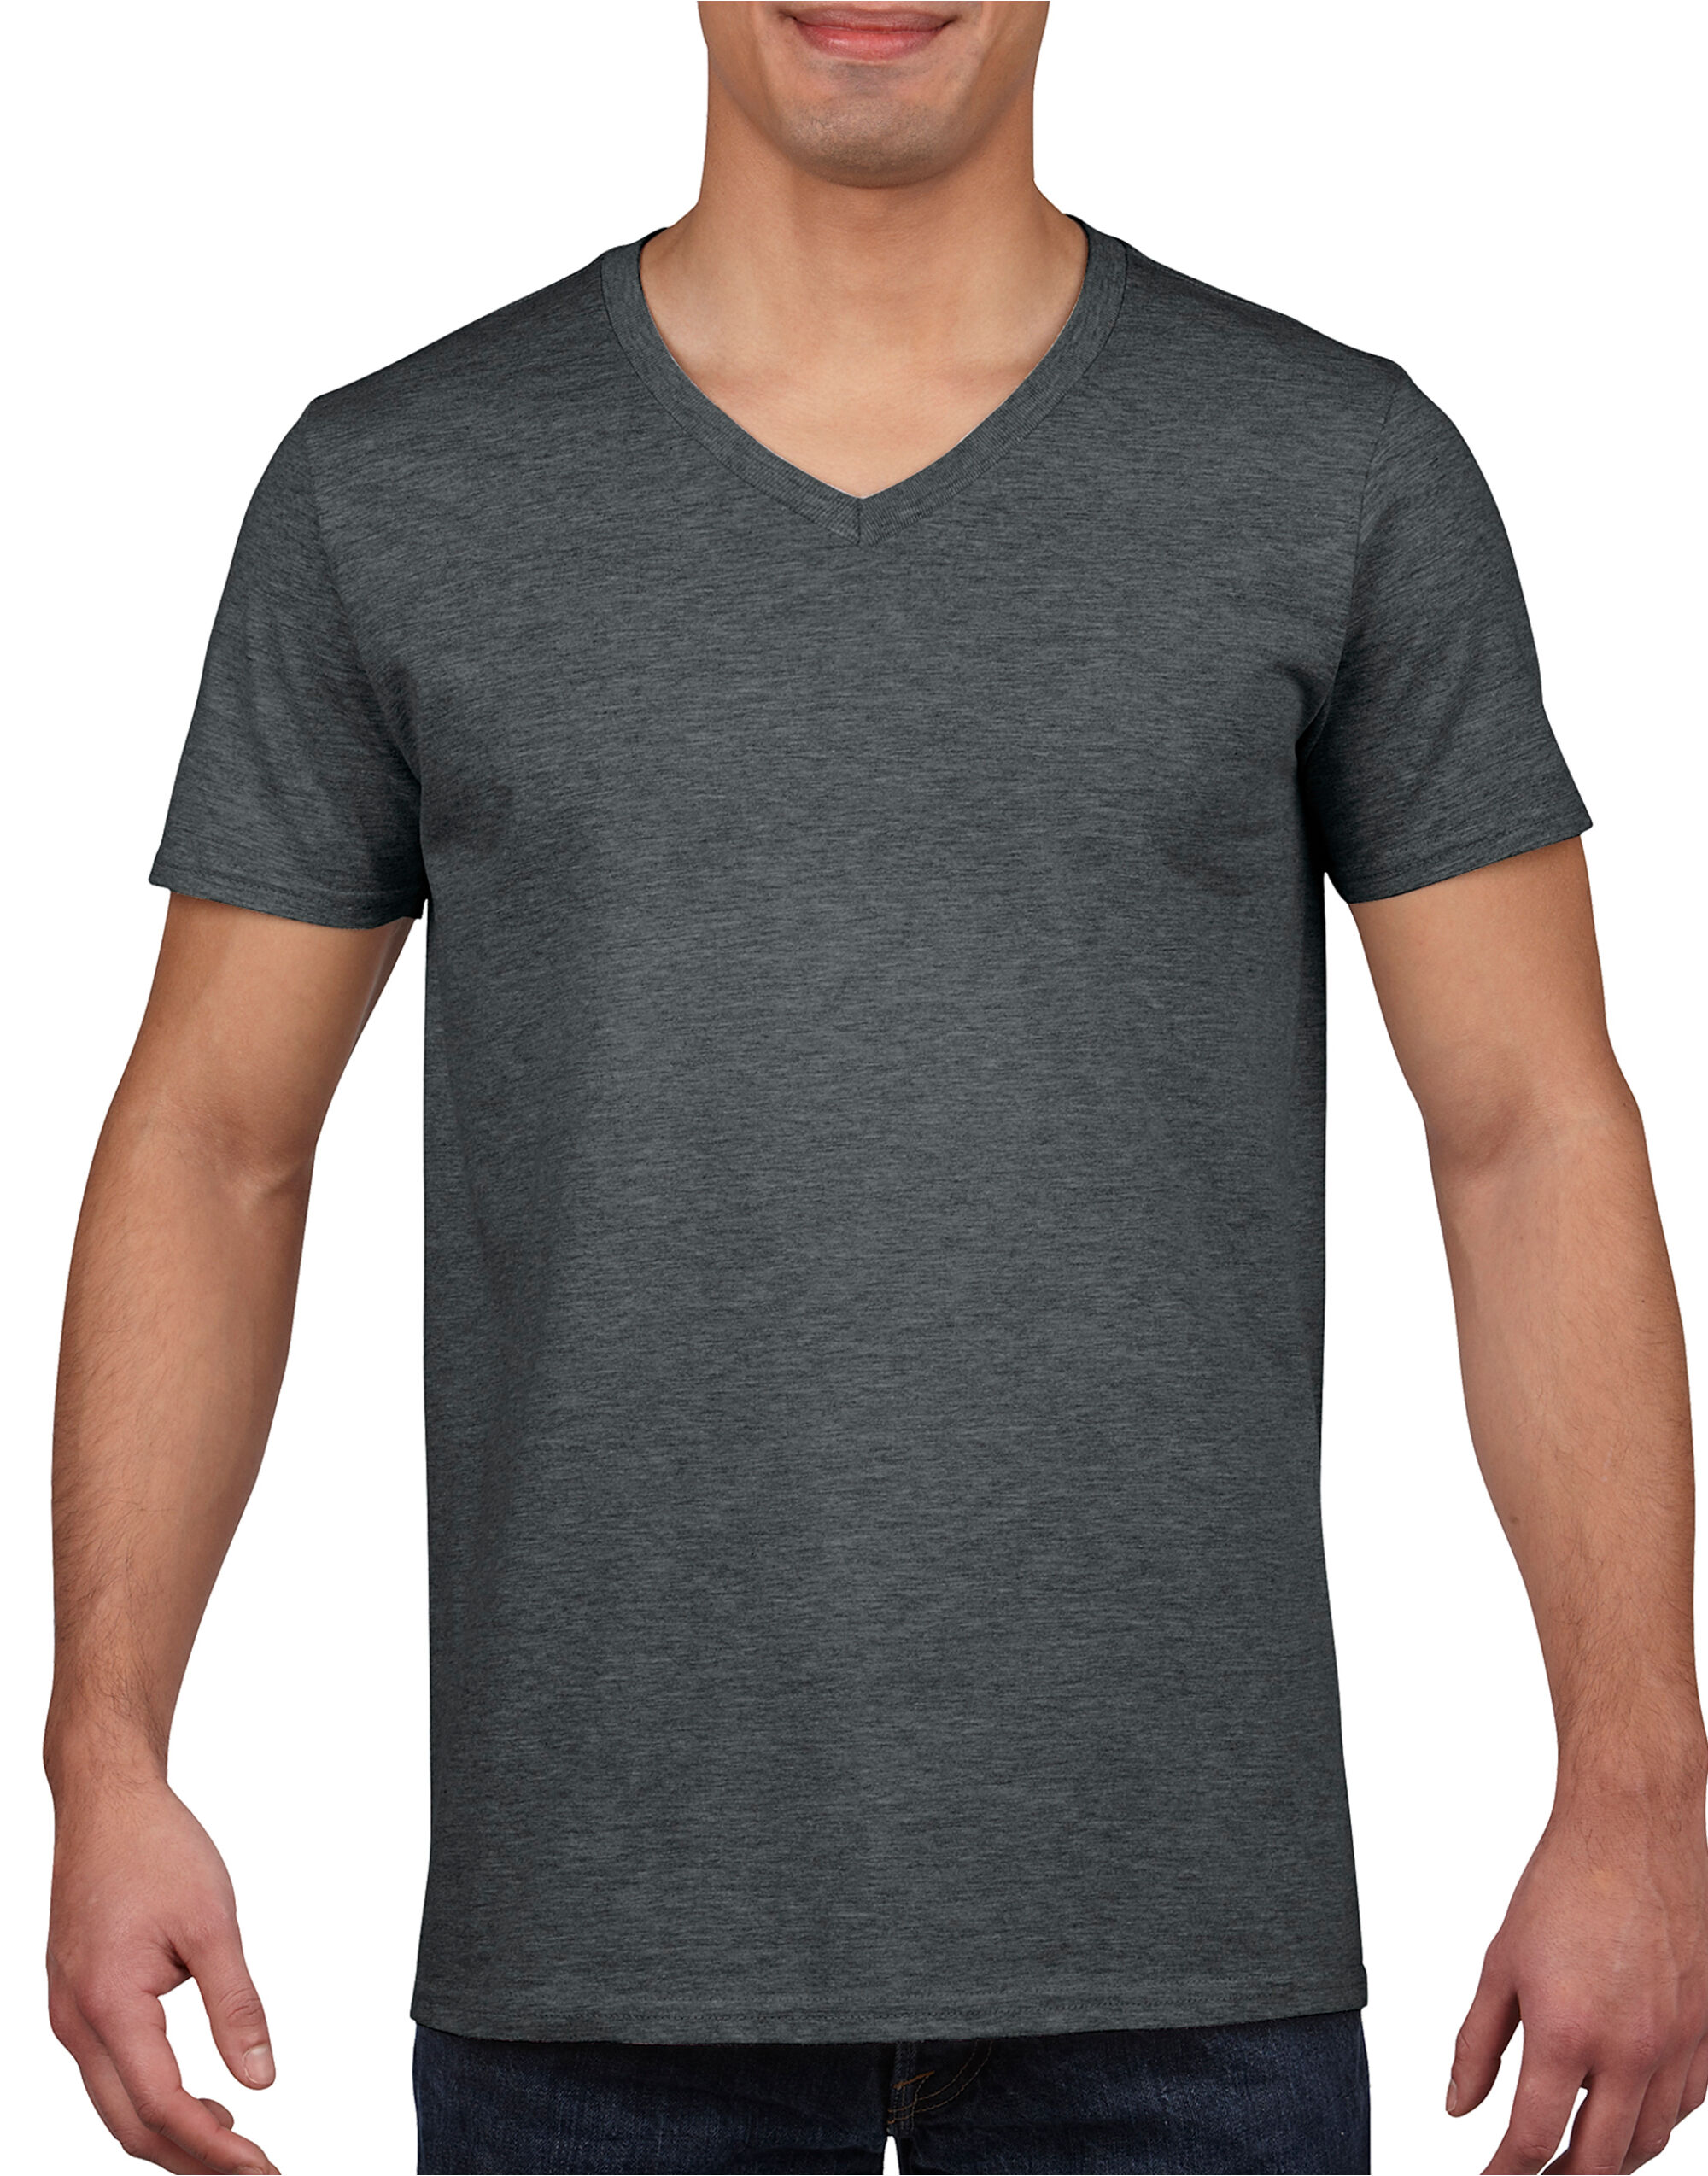 Mens Soft Style V-Neck T-Shirt